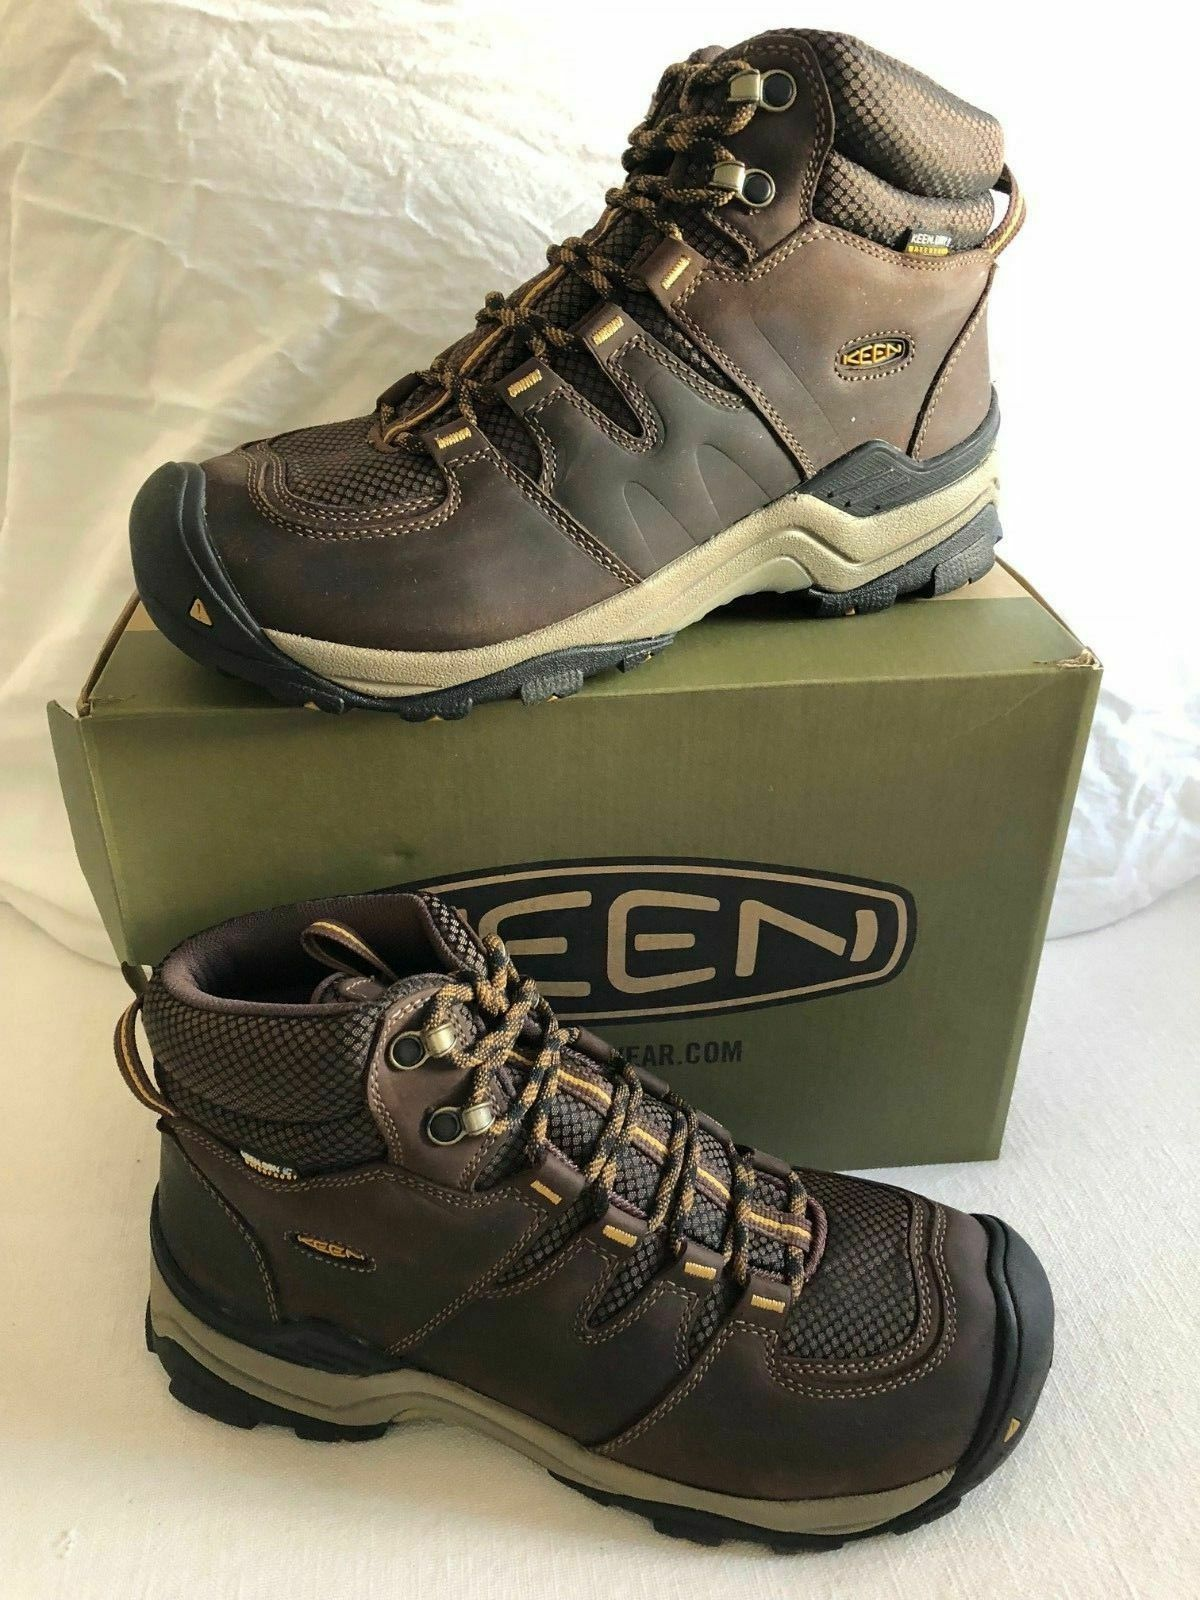 KEEN Outdoor 1015298 Men's Gypsum II  Waterproof Mid Boots Leather Hiking shoes  fast shipping